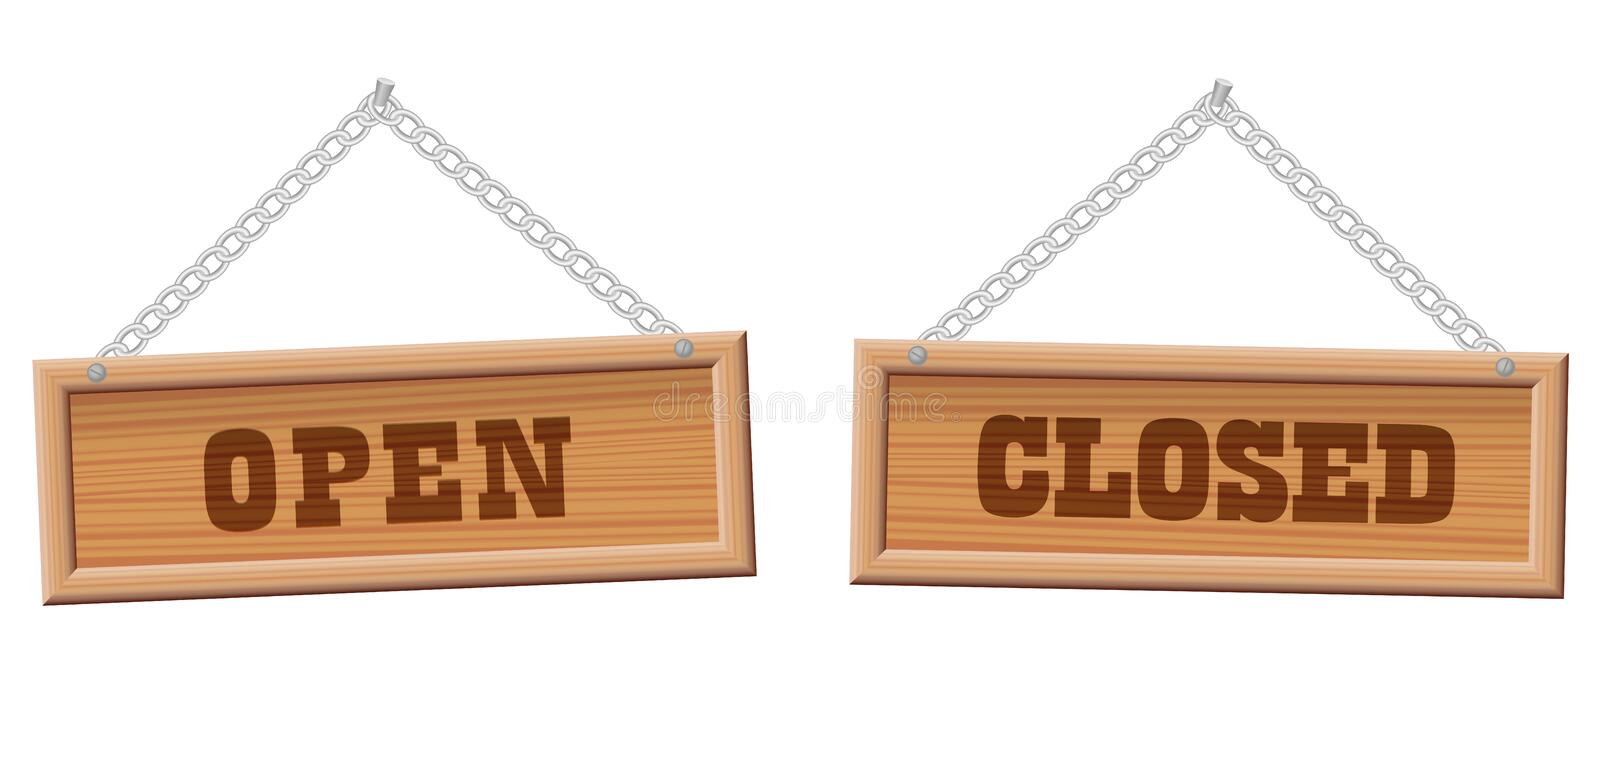 Open Closed Store Sign Wooden Boards stock illustration